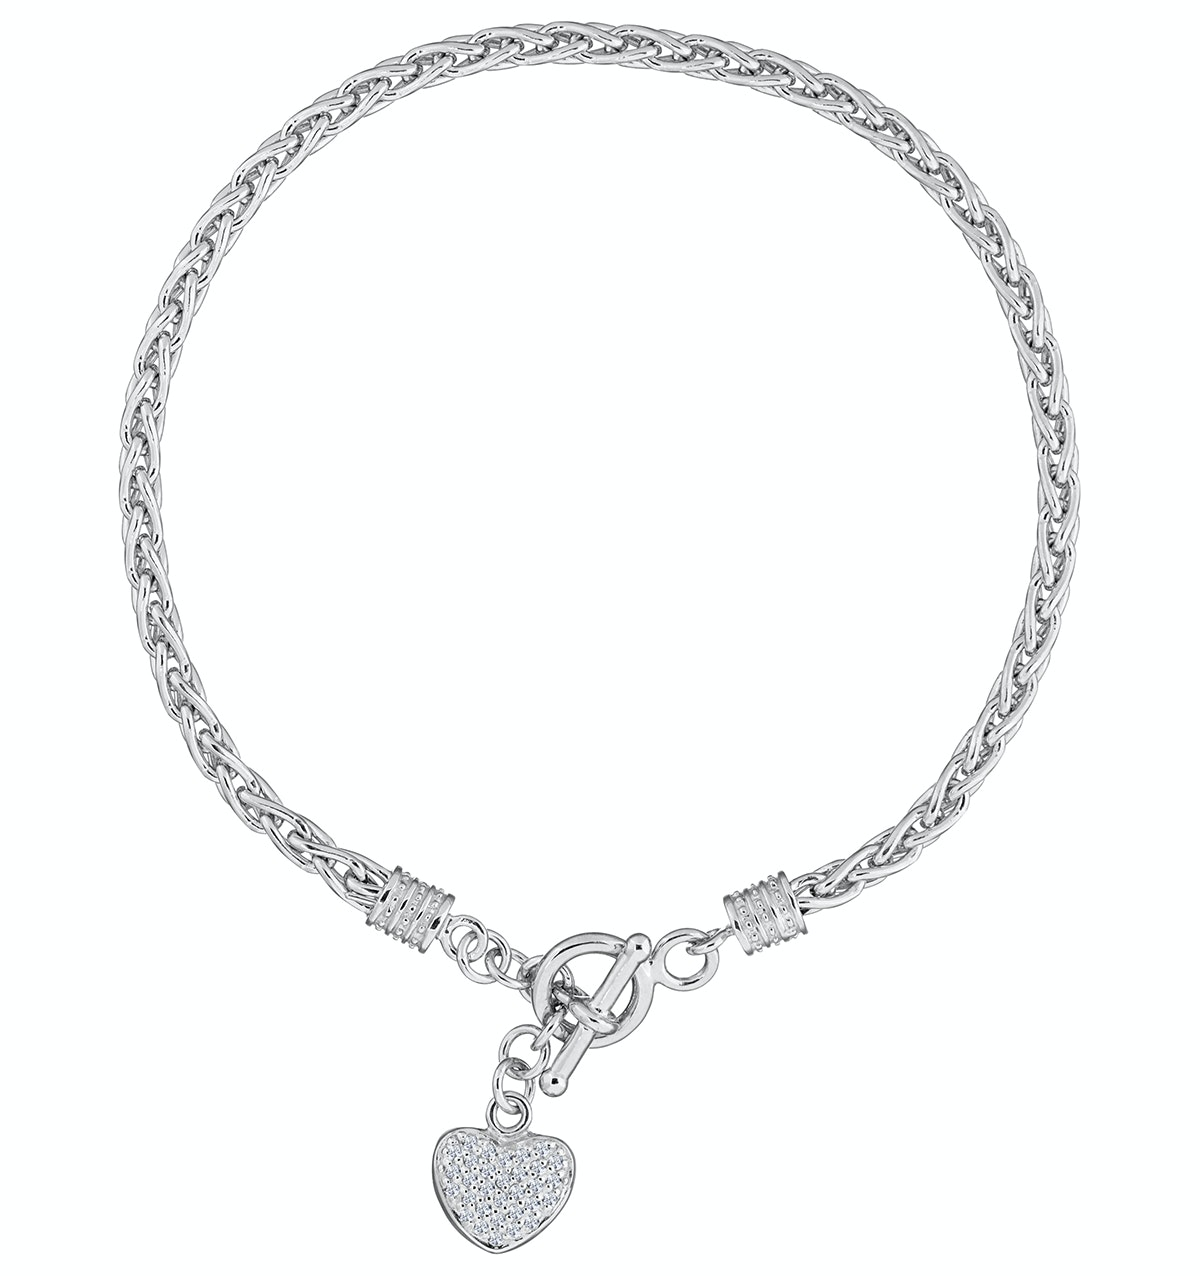 Silver and Diamond Heart Byzantine Bracelet - Tesoro Collection